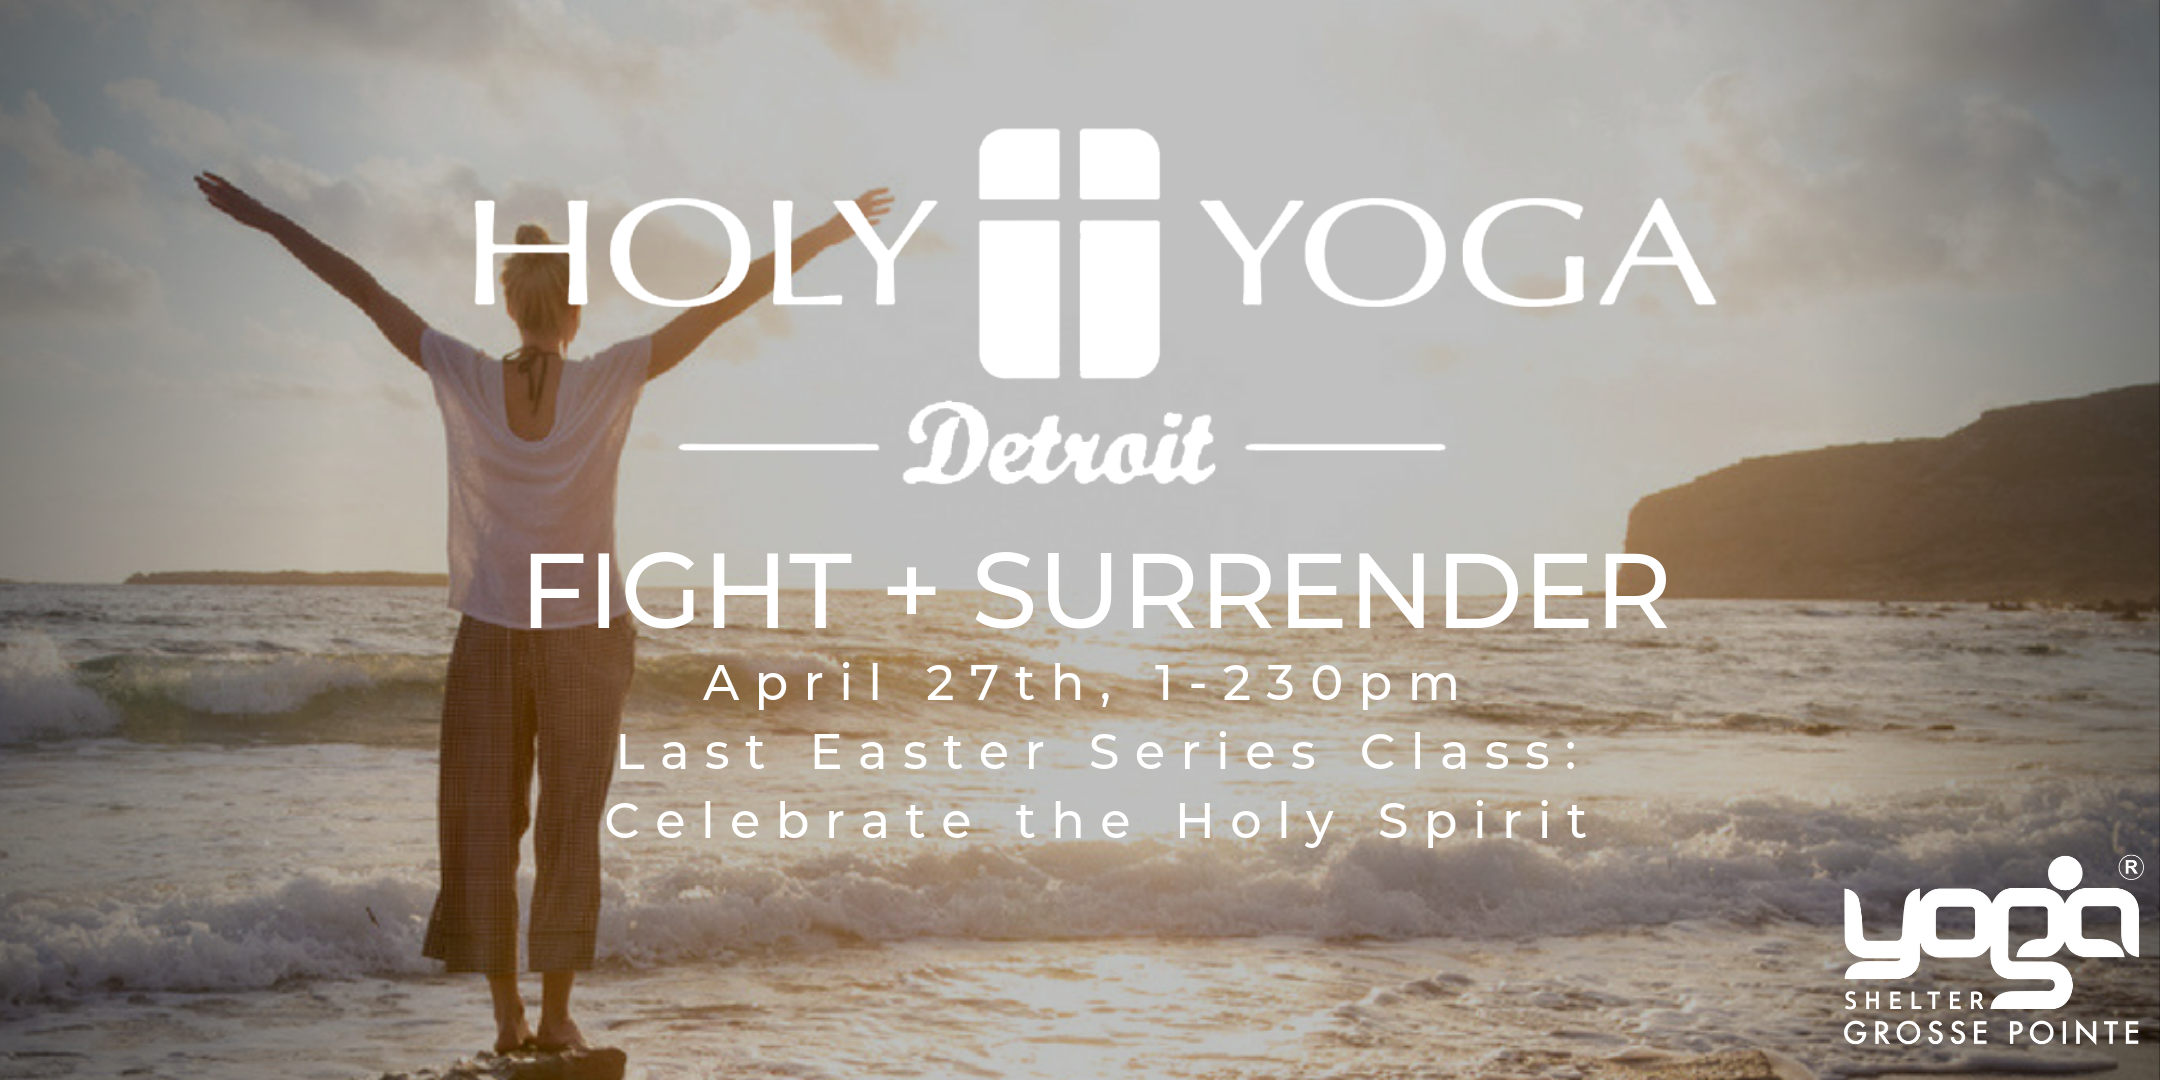 Register for this Free Class at Yoga Shelter Grosse Pointe Here:    Eventbrite